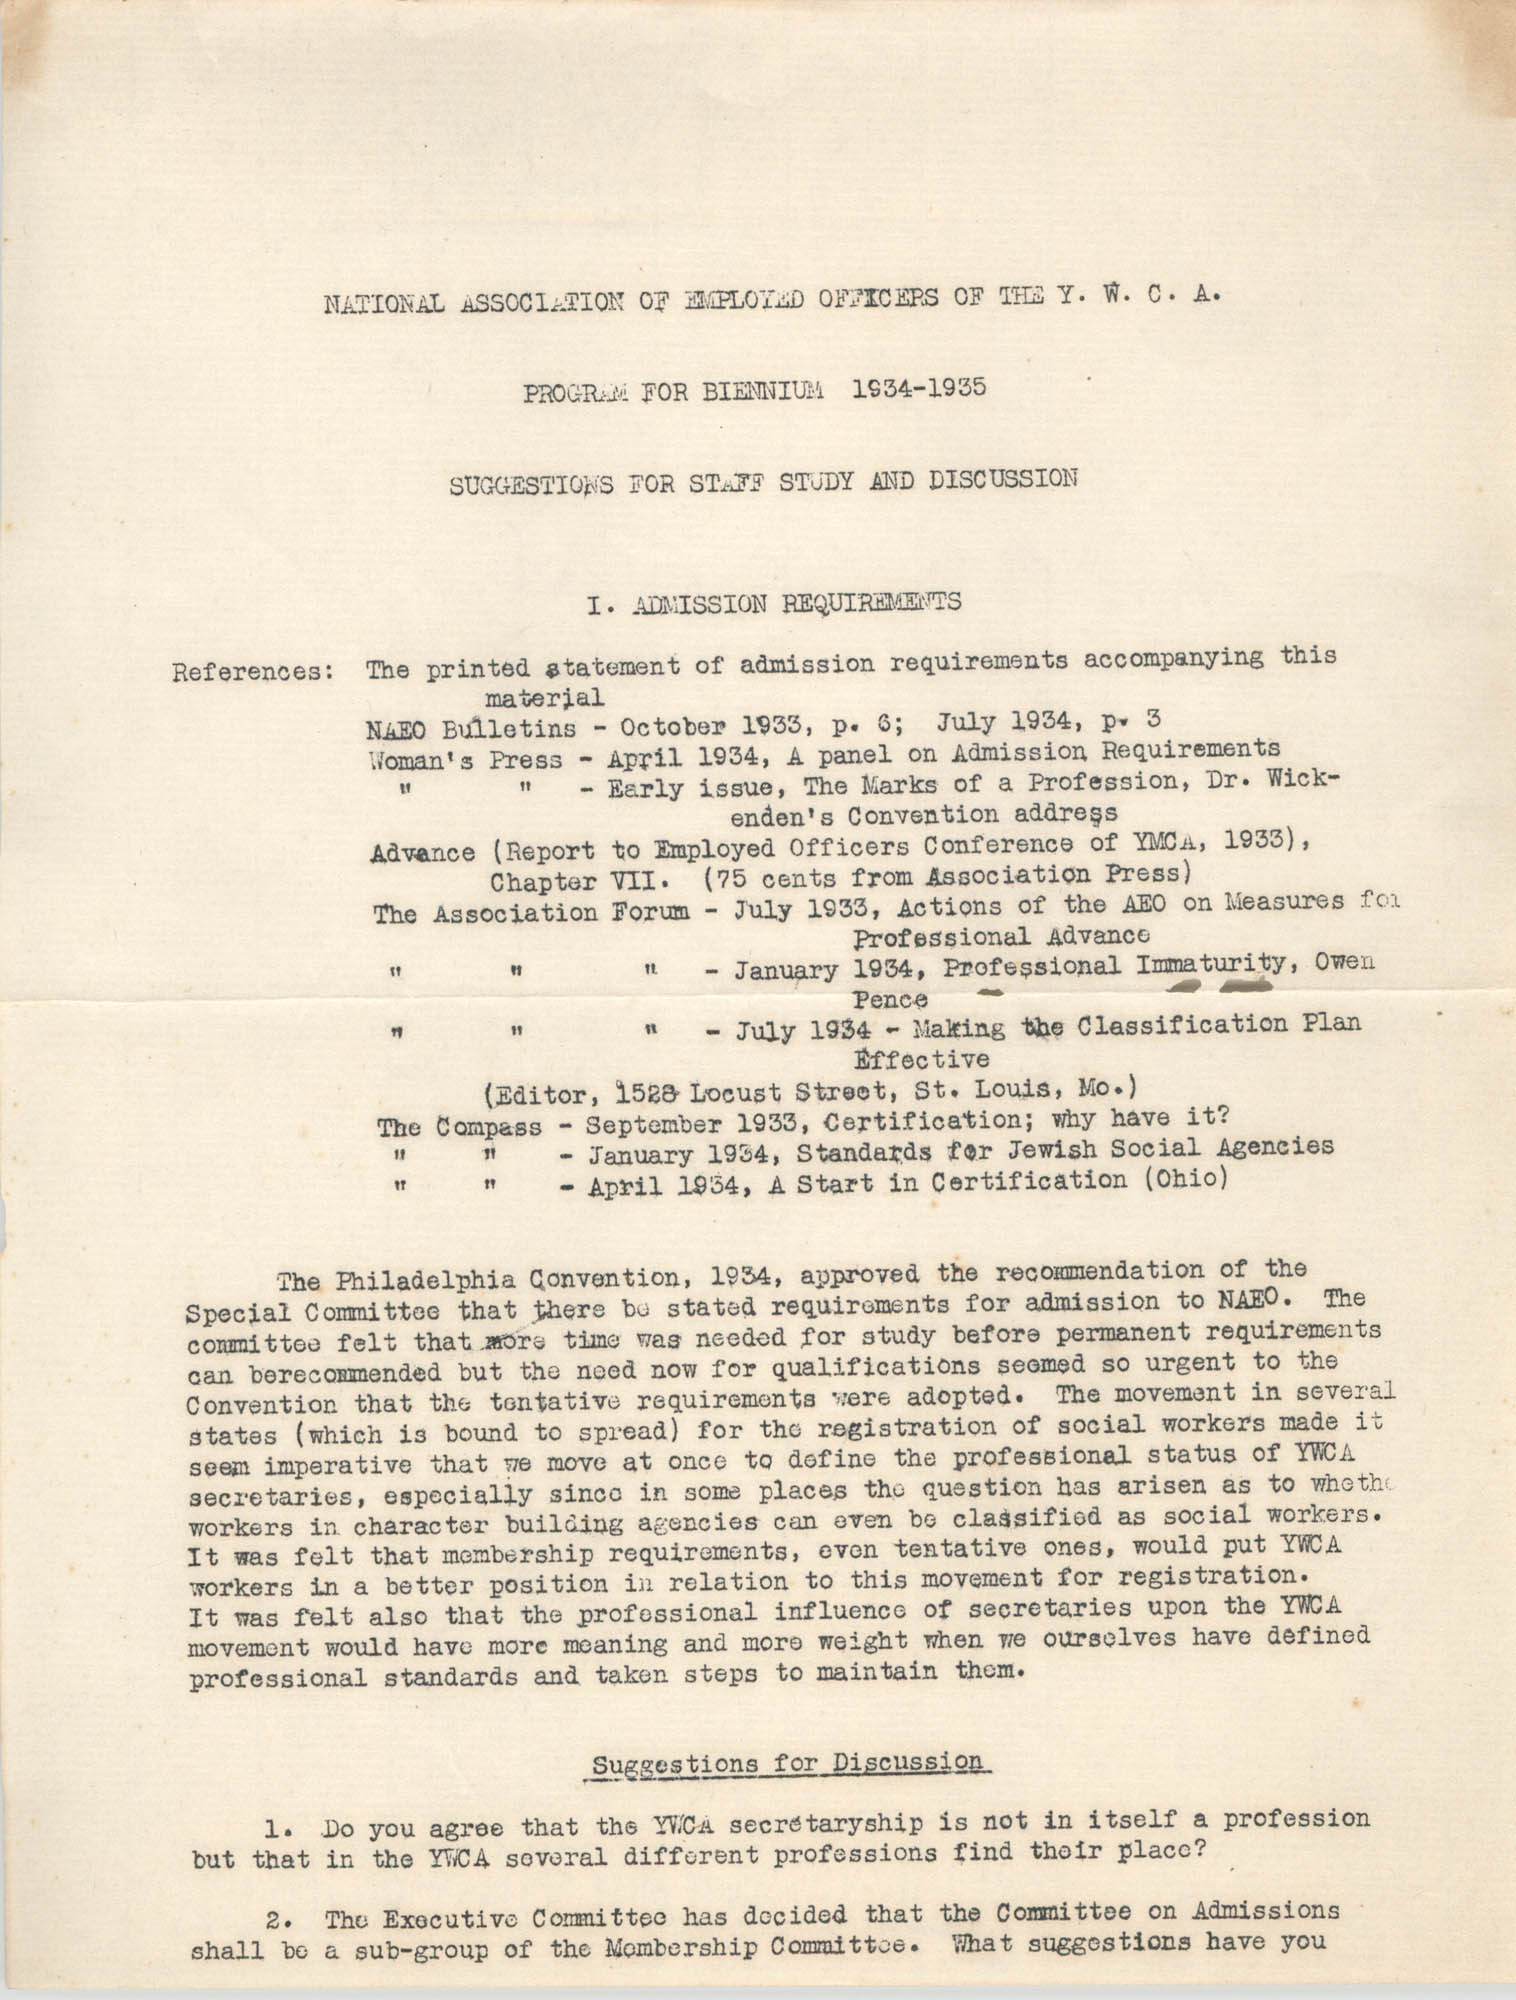 National Association of Employed Officers of the Y.W.C.A. Program for Biennium, 1934-1935, Page 1